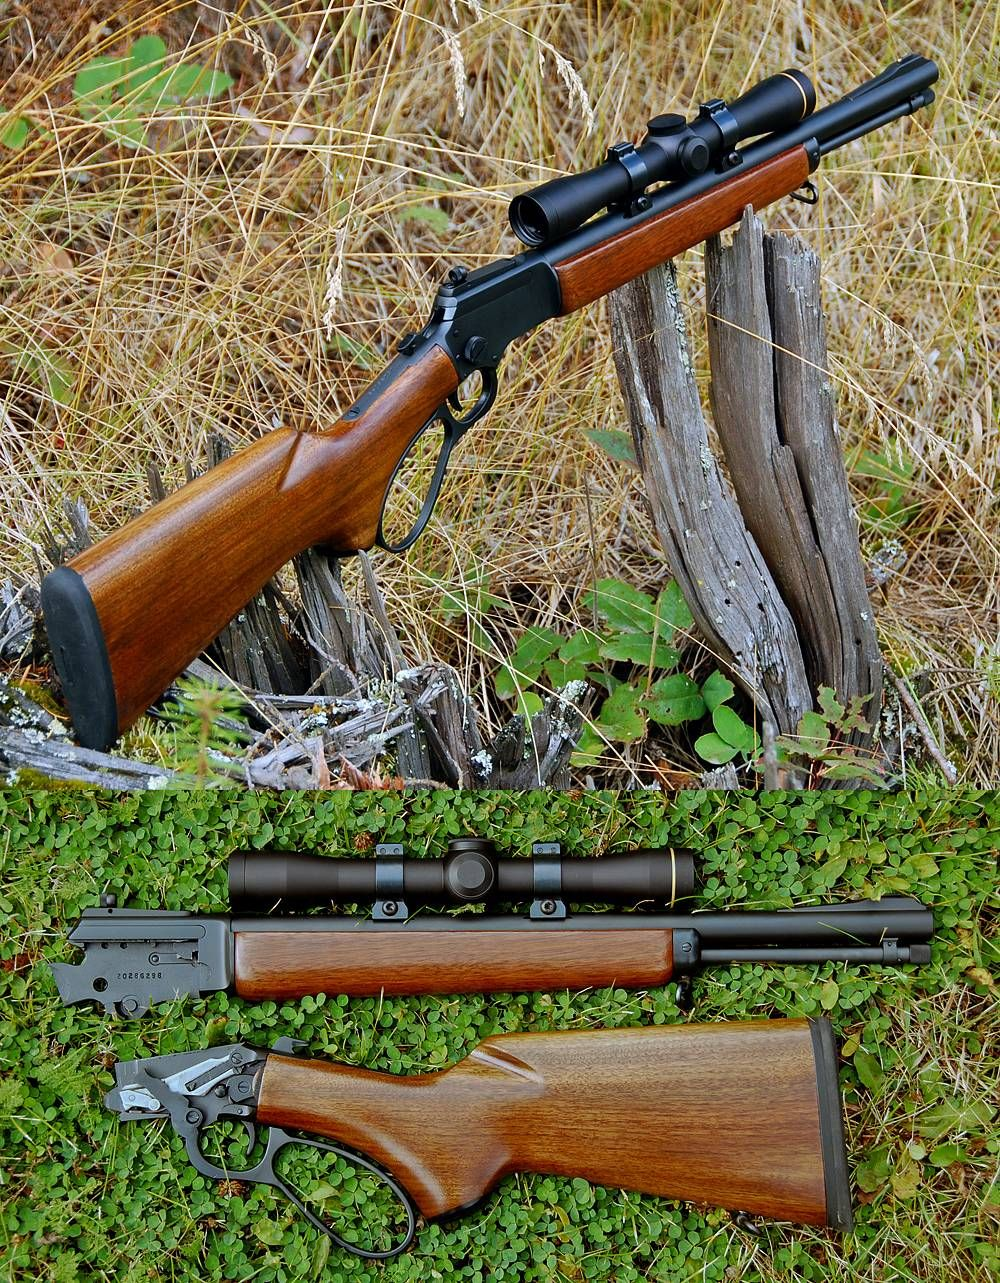 38 Best Nn1 Images On Pinterest: Best 25+ Lever Action Rifles Ideas On Pinterest